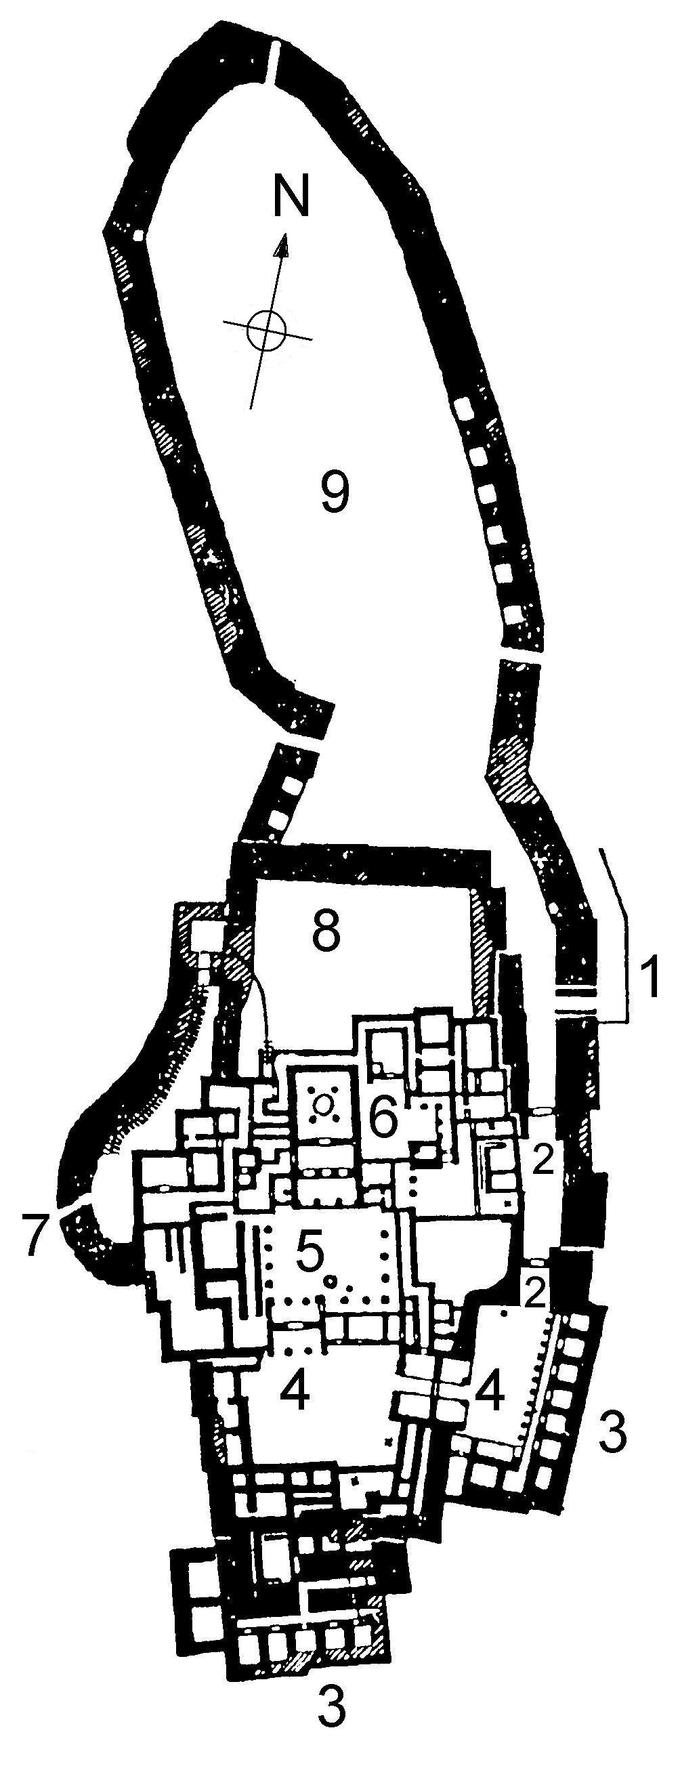 Drawing of the ground plan of the citadel of Tiryns, circa 1400–1200 BCE, in Tiryns, Greece.